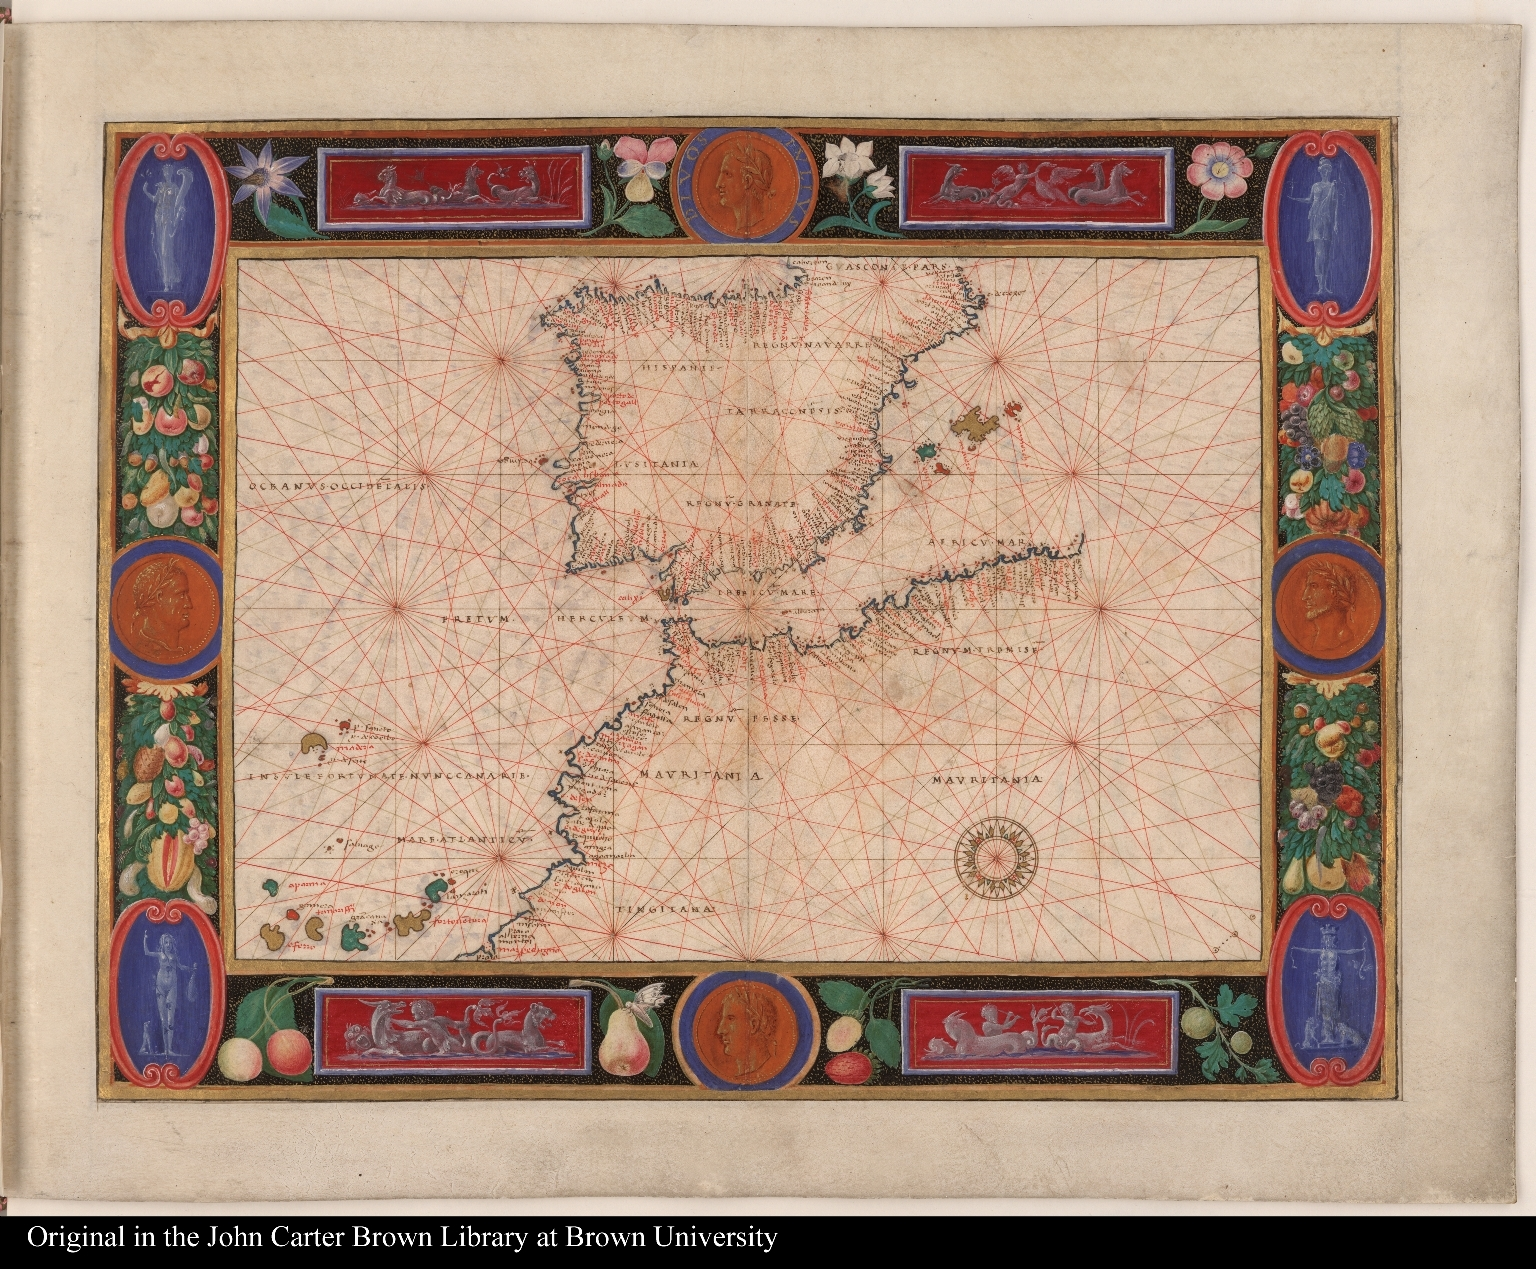 [Map of Spain, Portugal, and northern Africa]